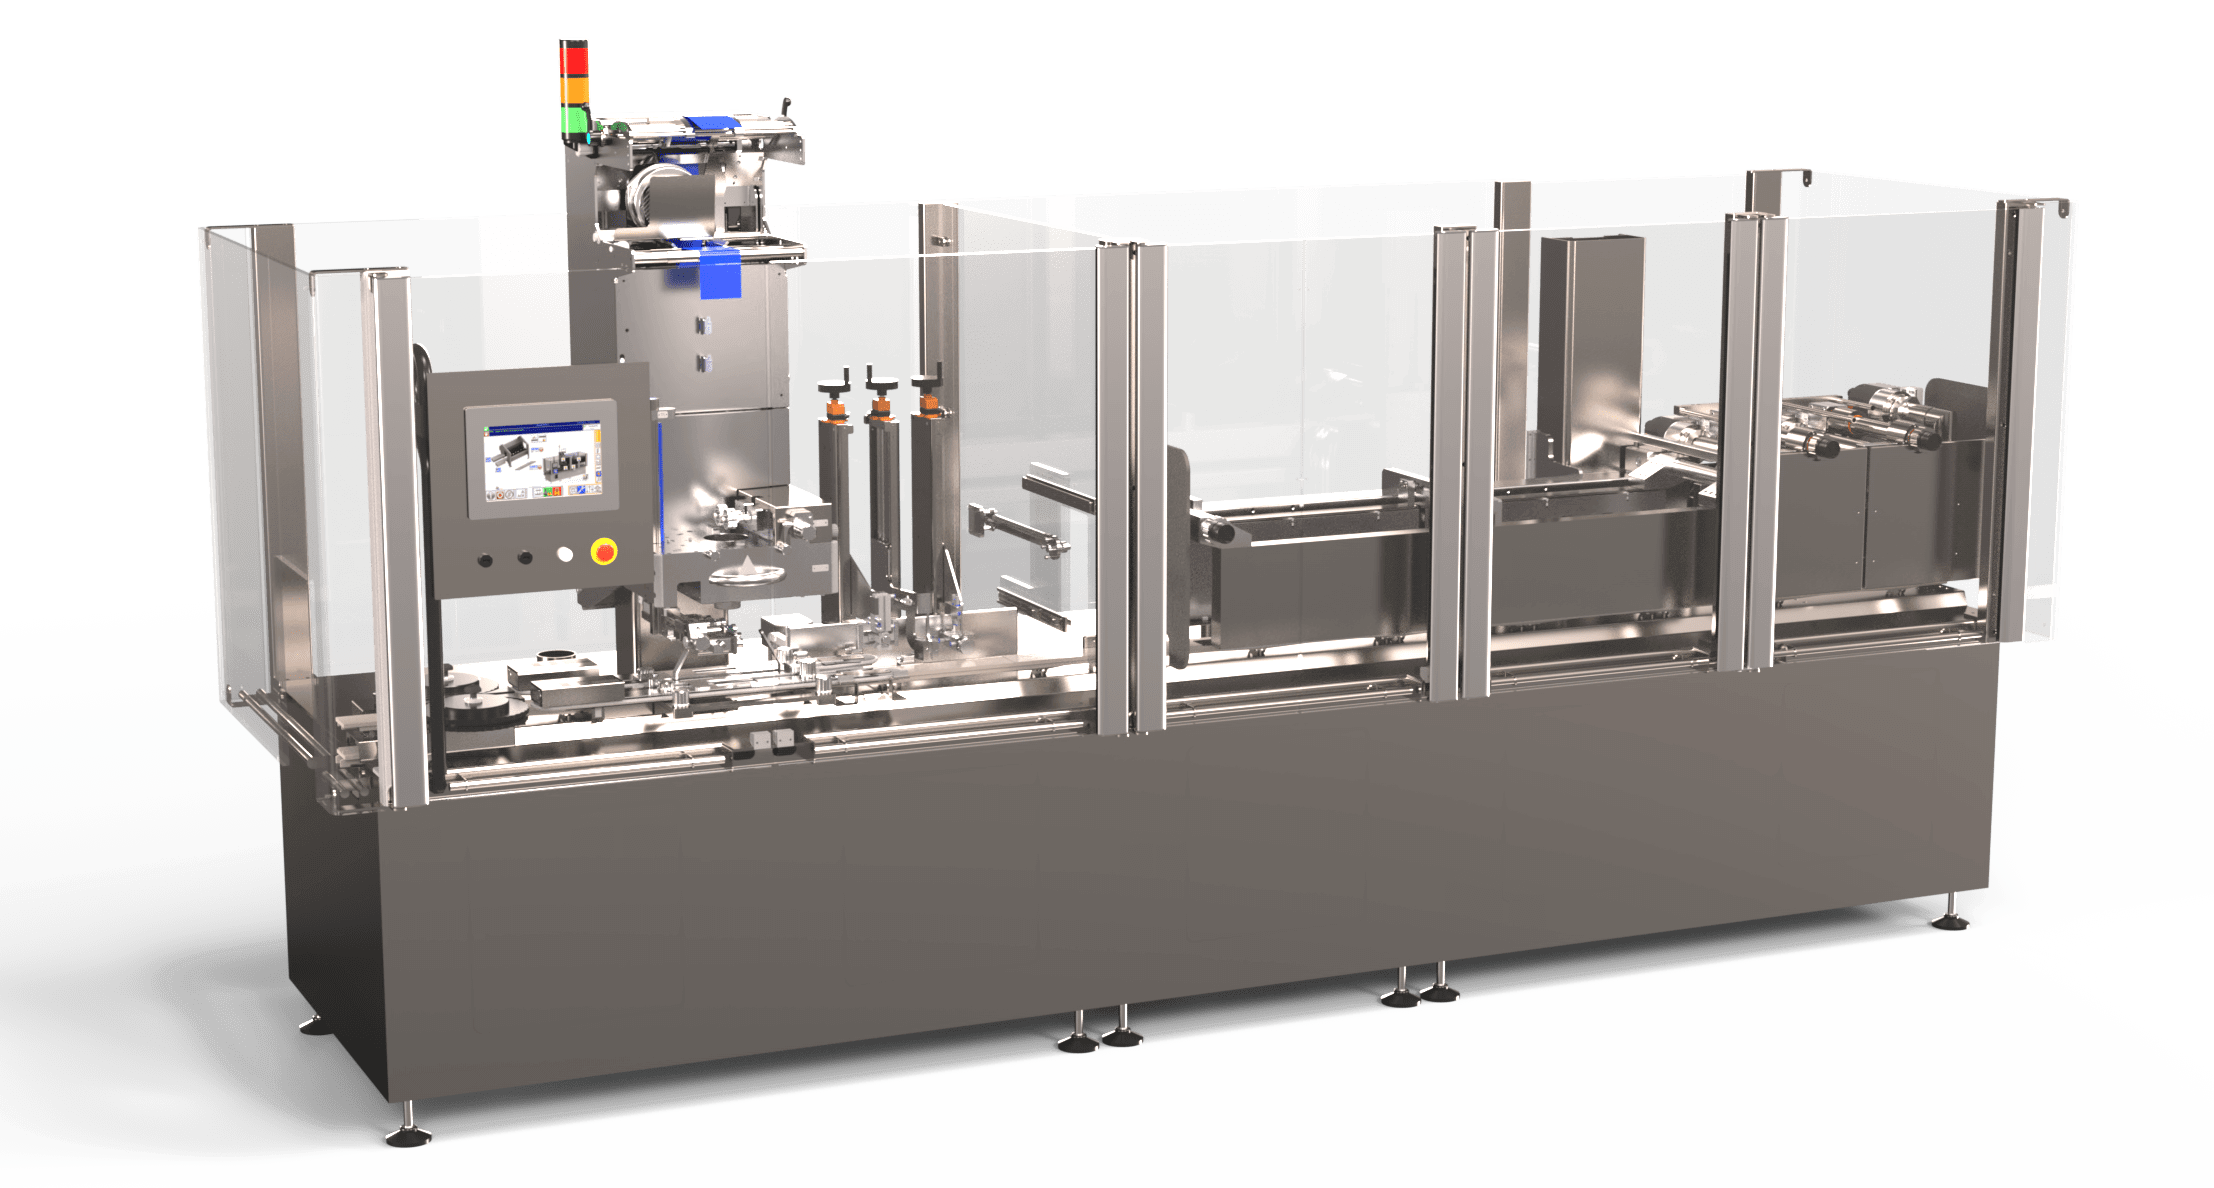 Flexibility and agility guaranteed for your bundled products' operations with the Combishrink MP120 packaging machine